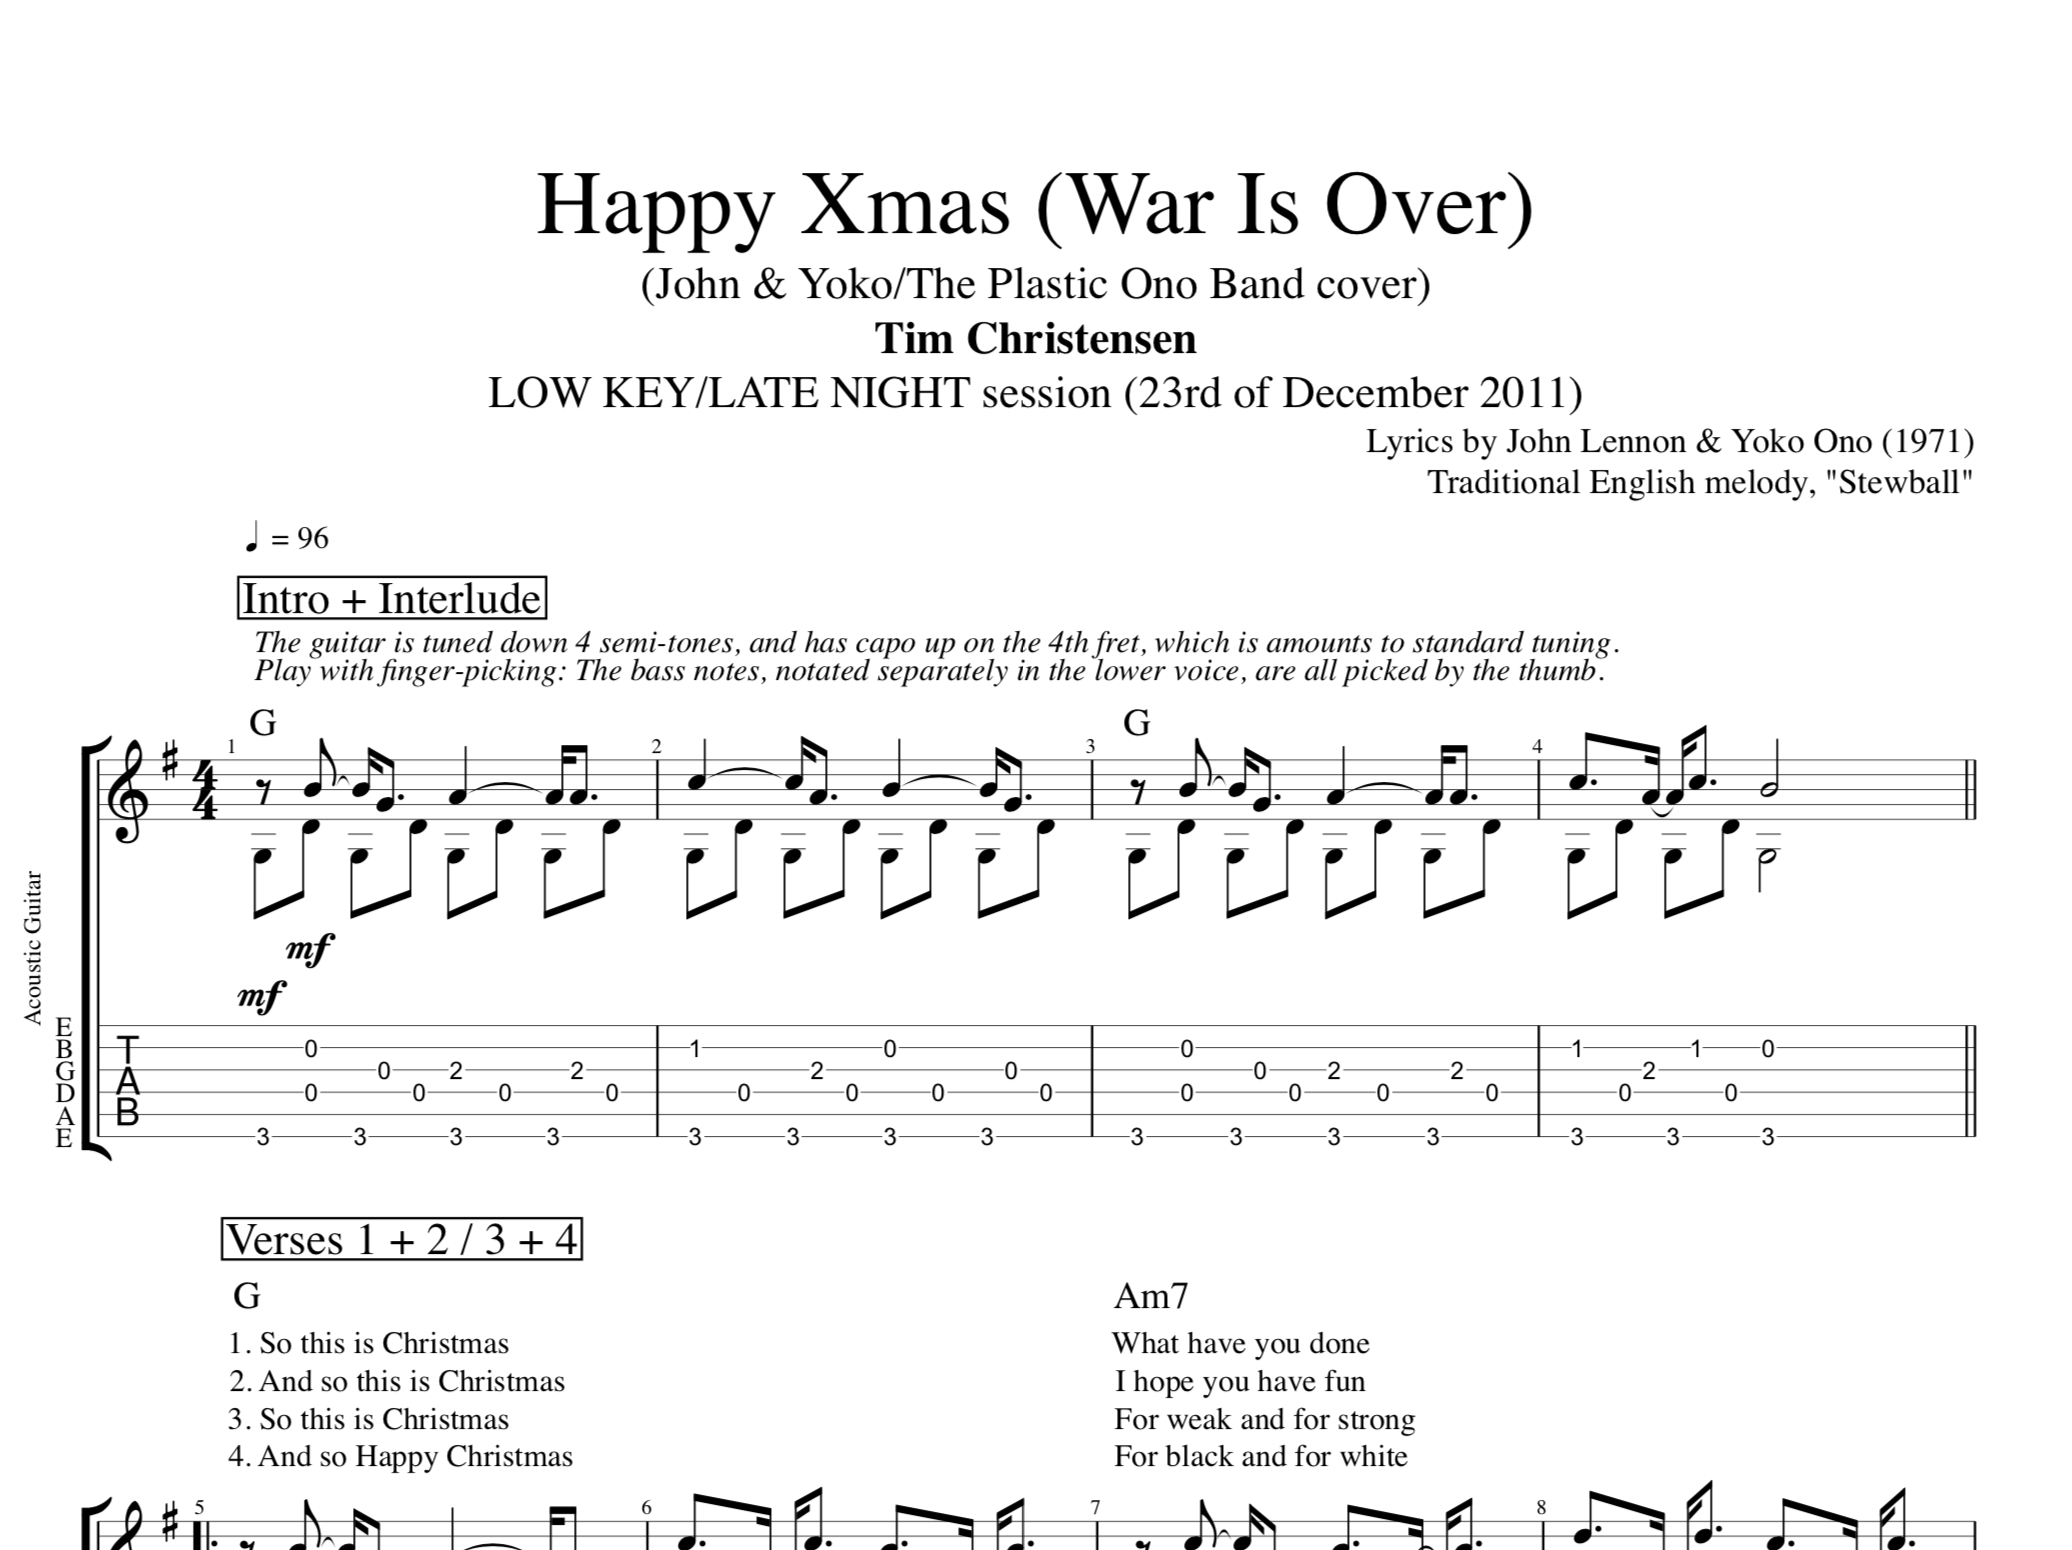 Happy Christmas War Is Over Chords.Happy Xmas War Is Over By Tim Christensen Guitar Tab Chords Lyrics Play Like The Greats Com